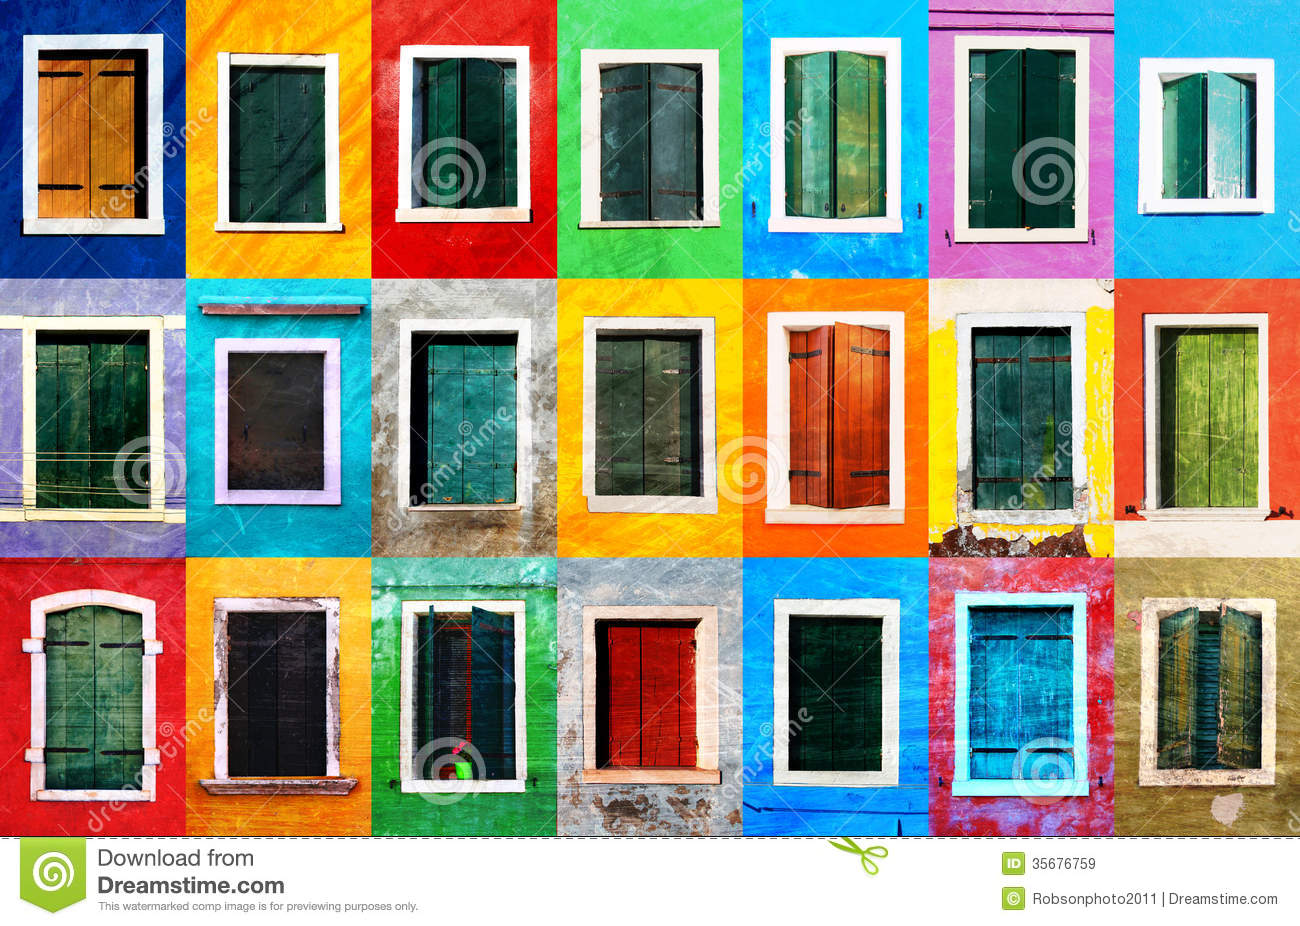 Collage of colorful grunge windows with frames on Burano island